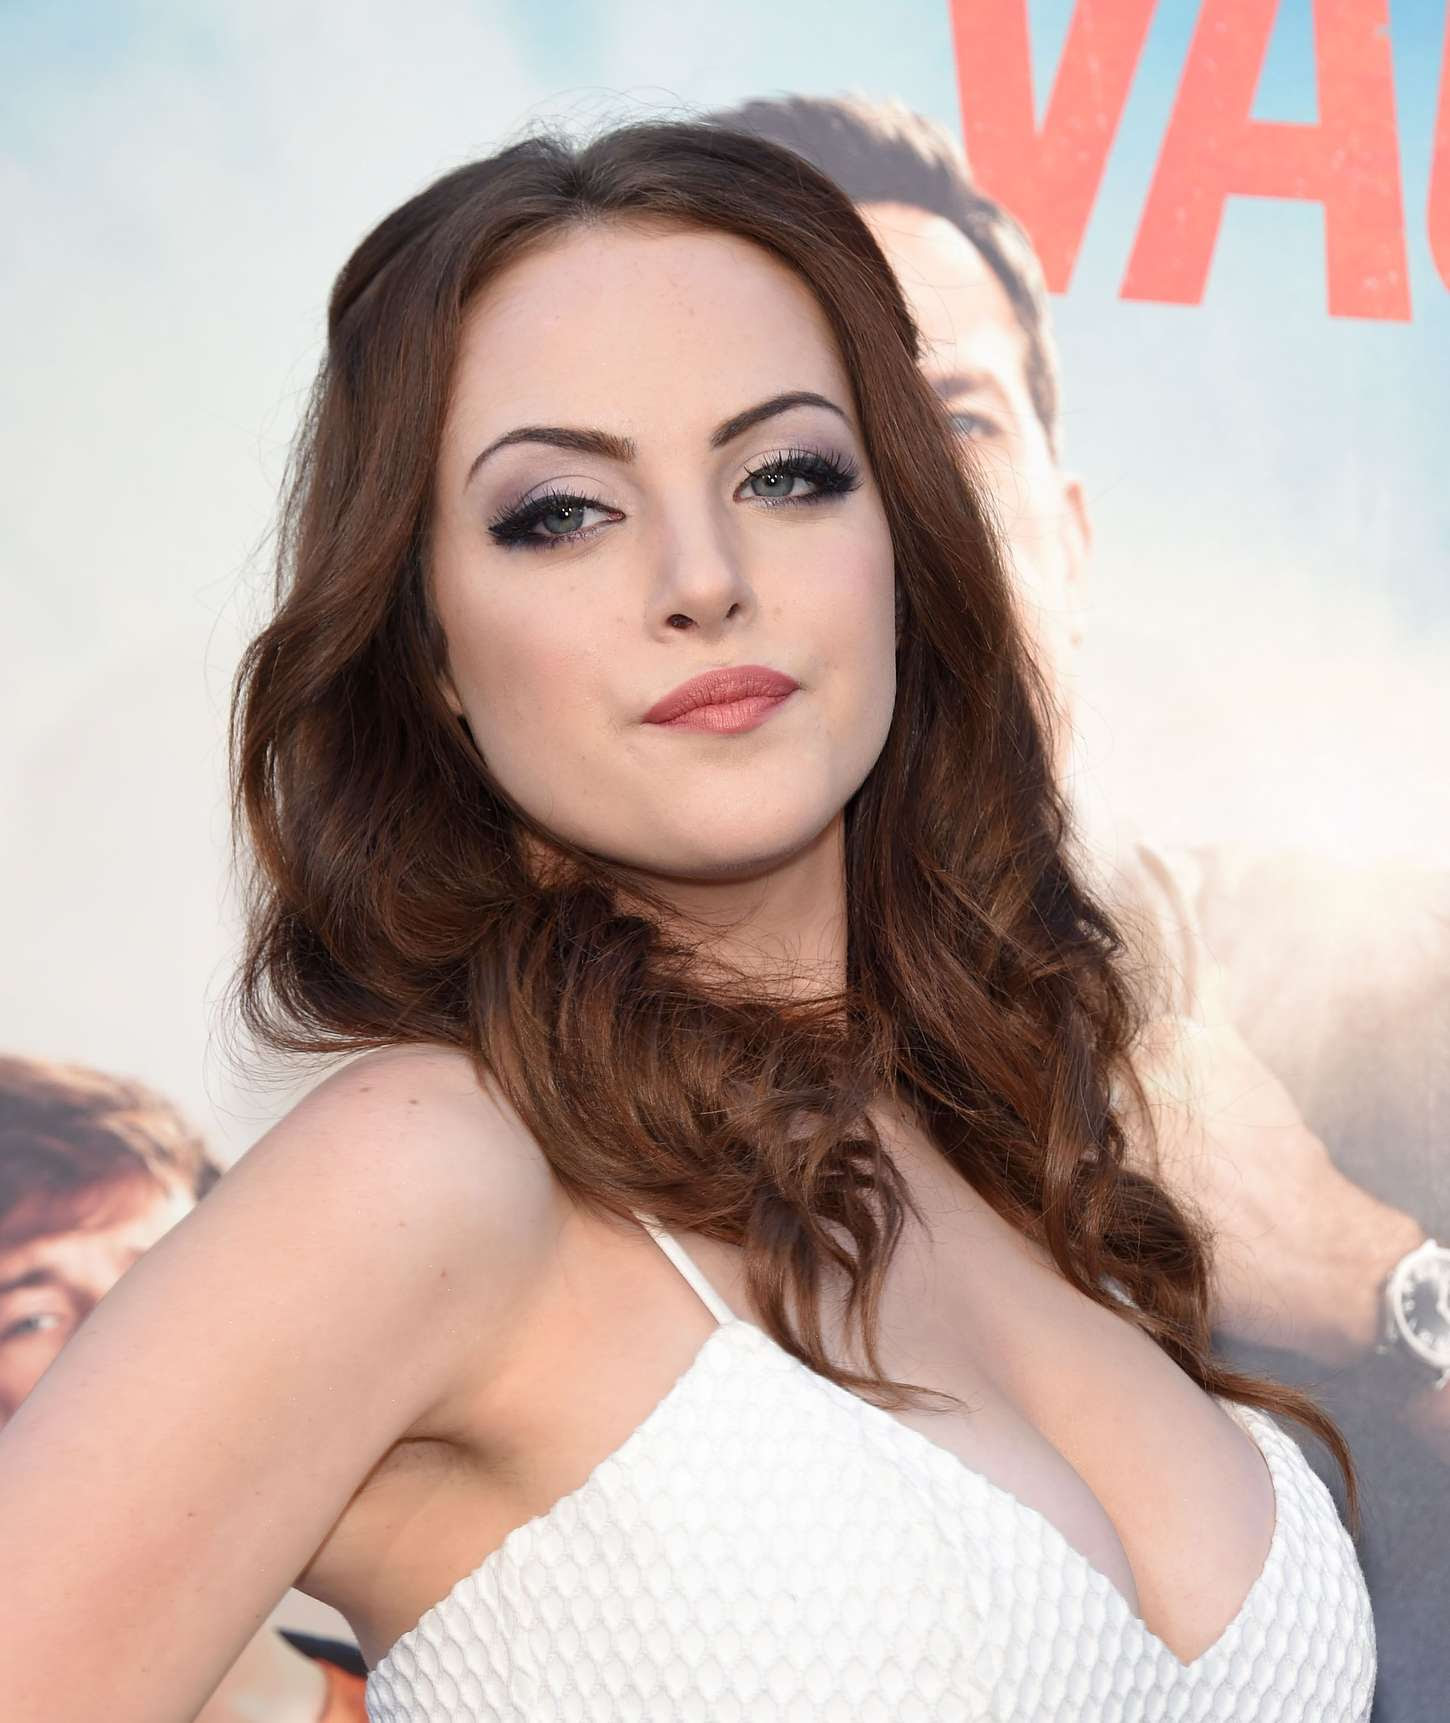 http://www.gotceleb.com/wp-content/uploads/photos/elizabeth-gillies/vacation-premiere-in-westwood/Elizabeth-Gillies:-Vacation-Premiere--03.jpg